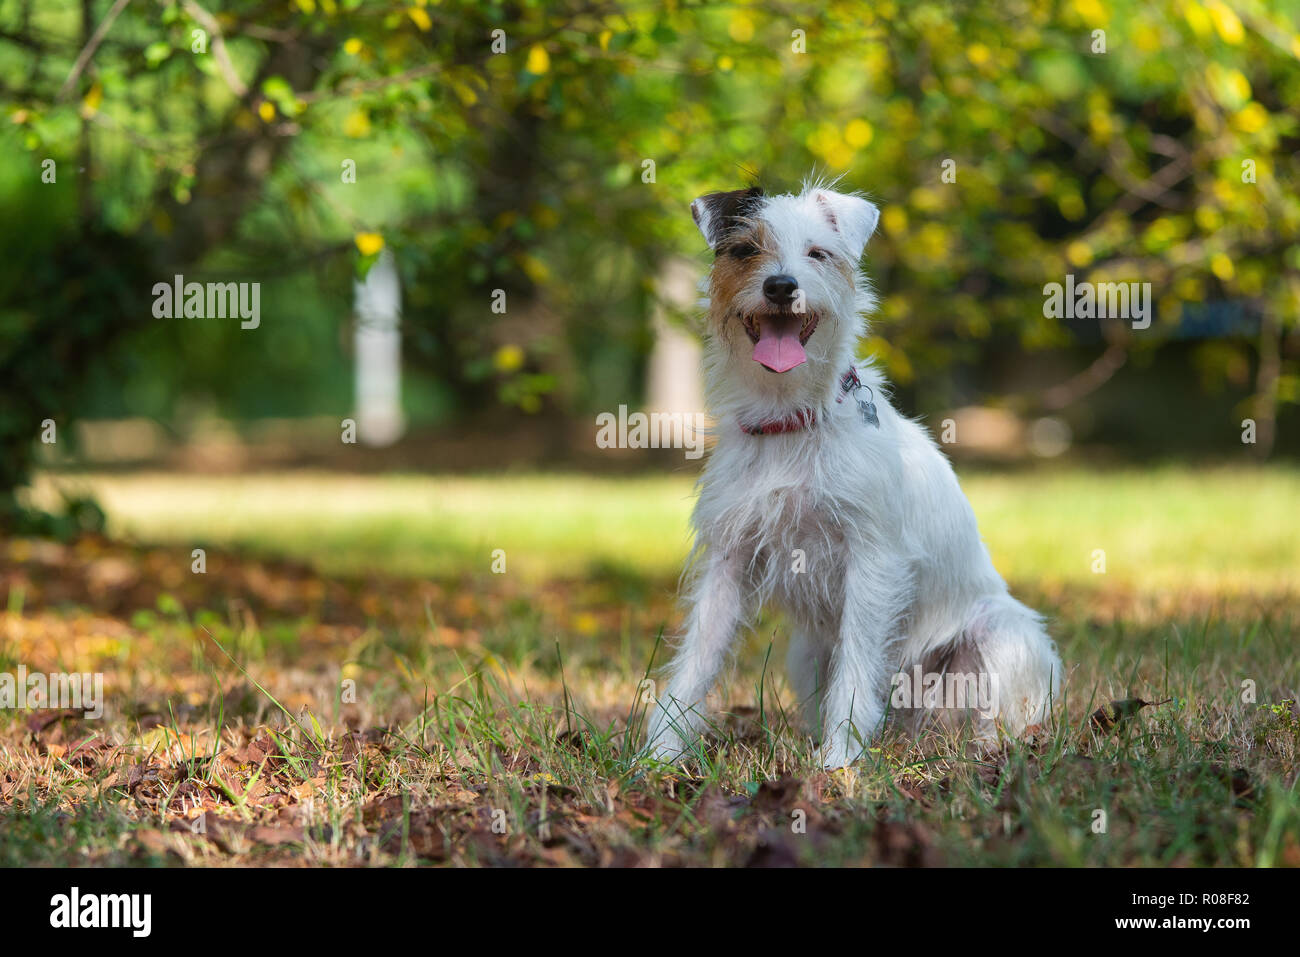 Parson Russell Terrier sitting in a city park - Stock Image